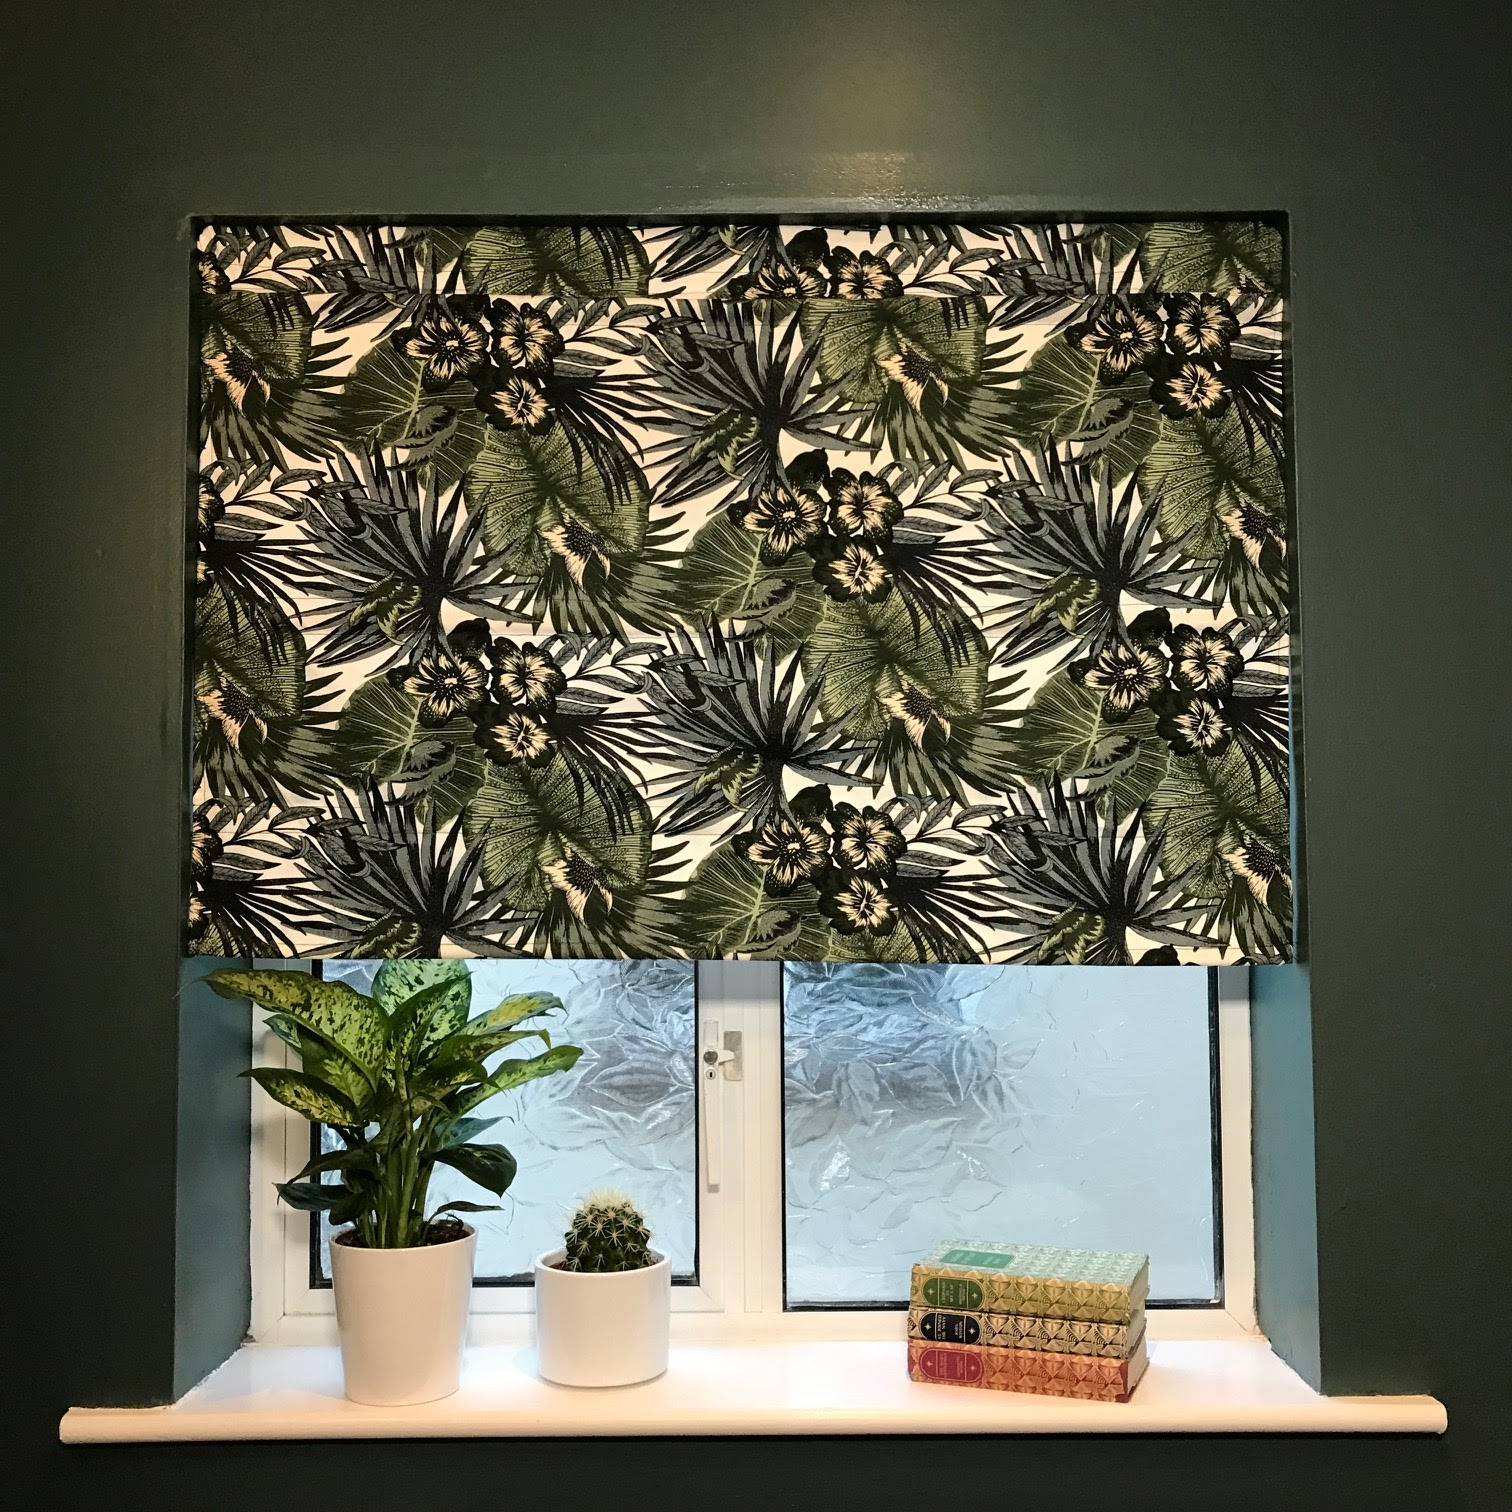 I am in love with the Ikea Hack Blind